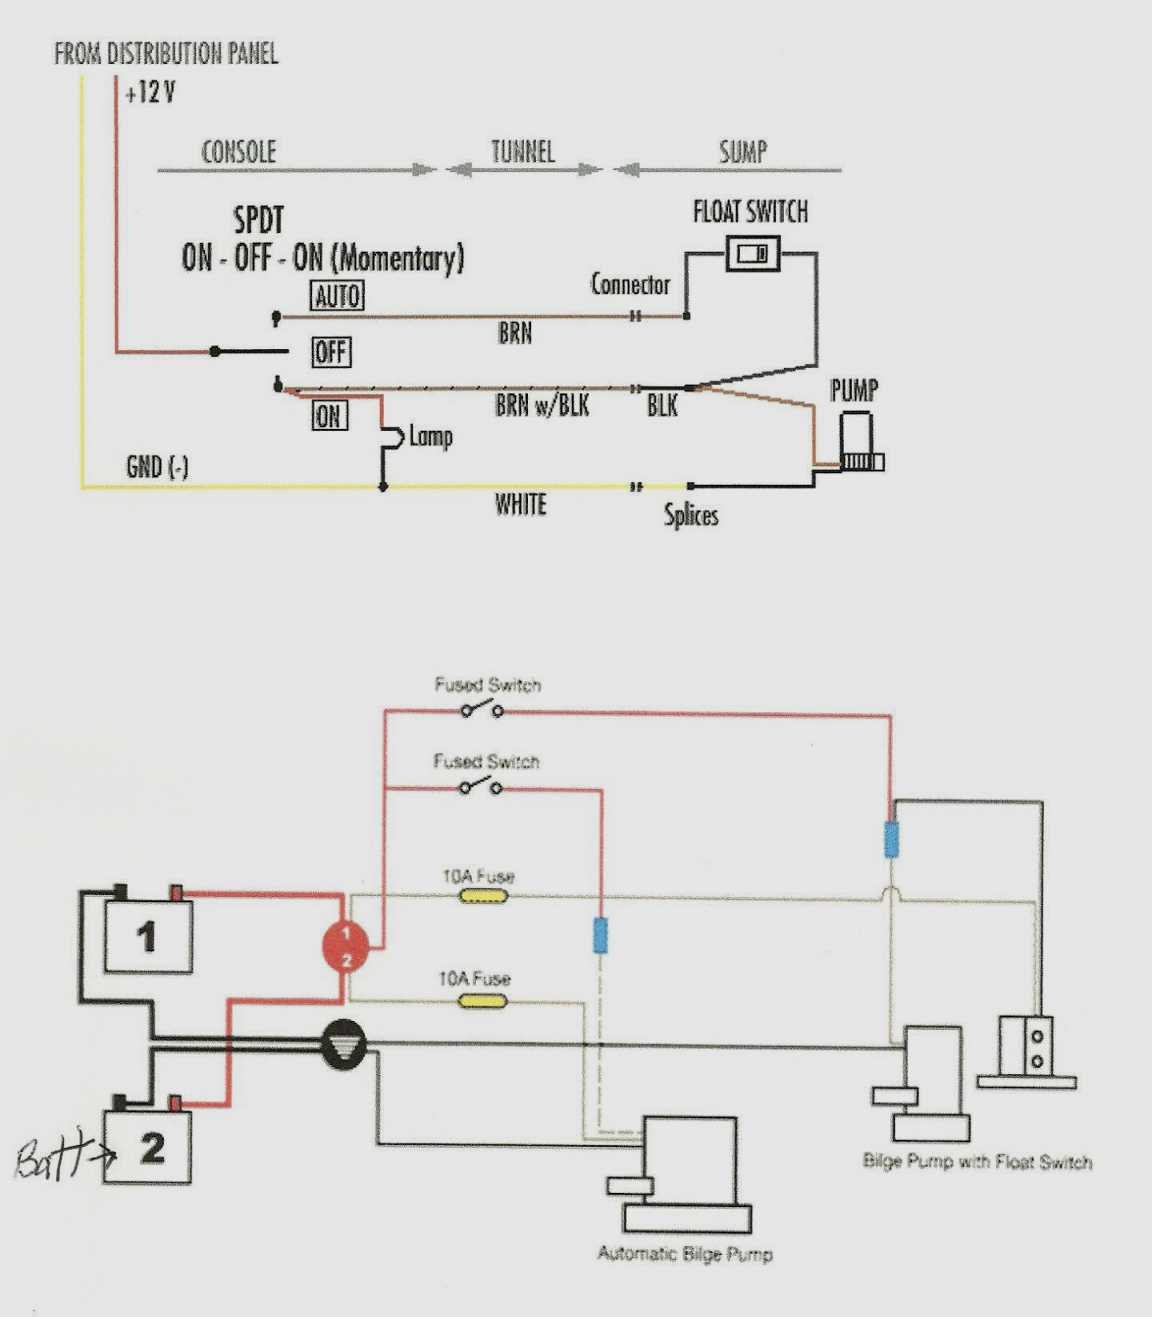 Septic Wire Diagram - Trusted Wiring Diagram Online - Bilge Pump Float Switch Wiring Diagram